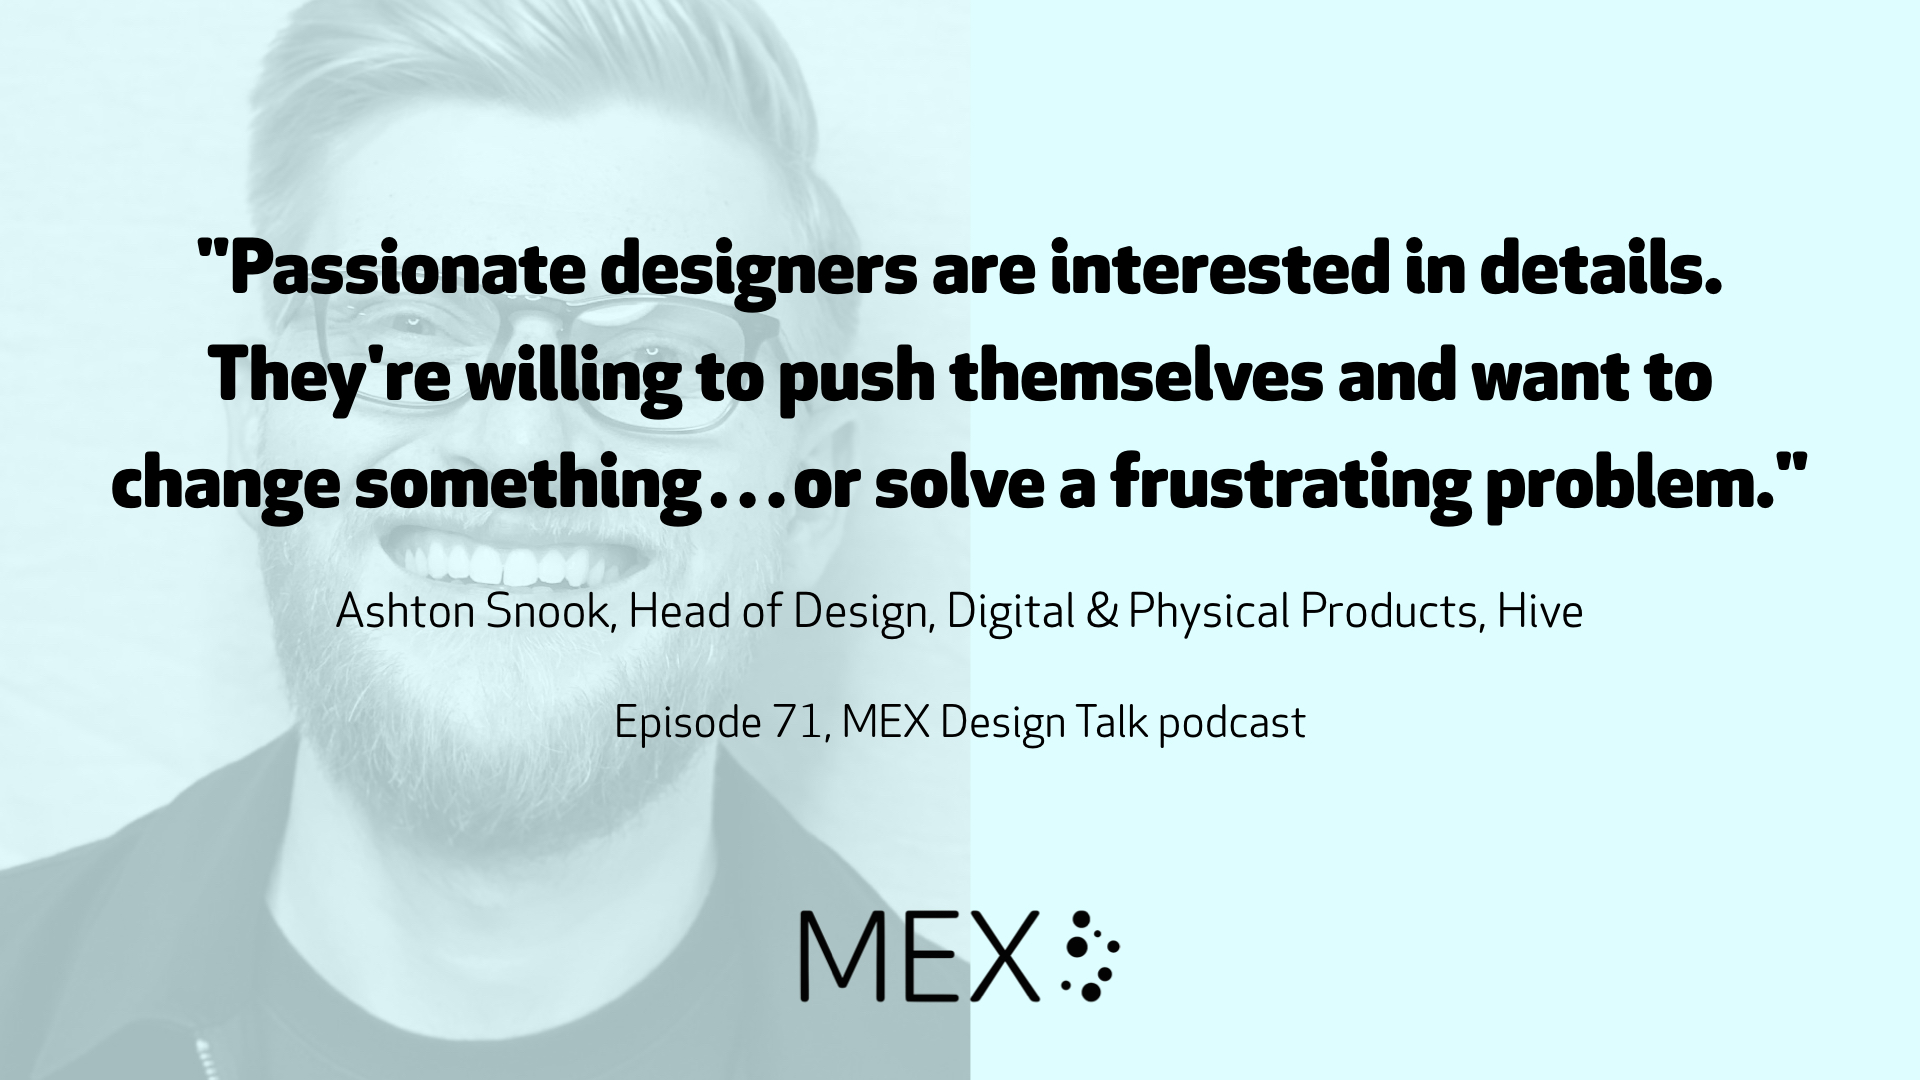 """Passionate designers are interested in details. They're willing to push themselves and want to change something…or solve a frustrating problem."" Ashton Snook, Head of Design, Digital & Physical Products, Hive Episode 71, MEX Design Talk podcast"